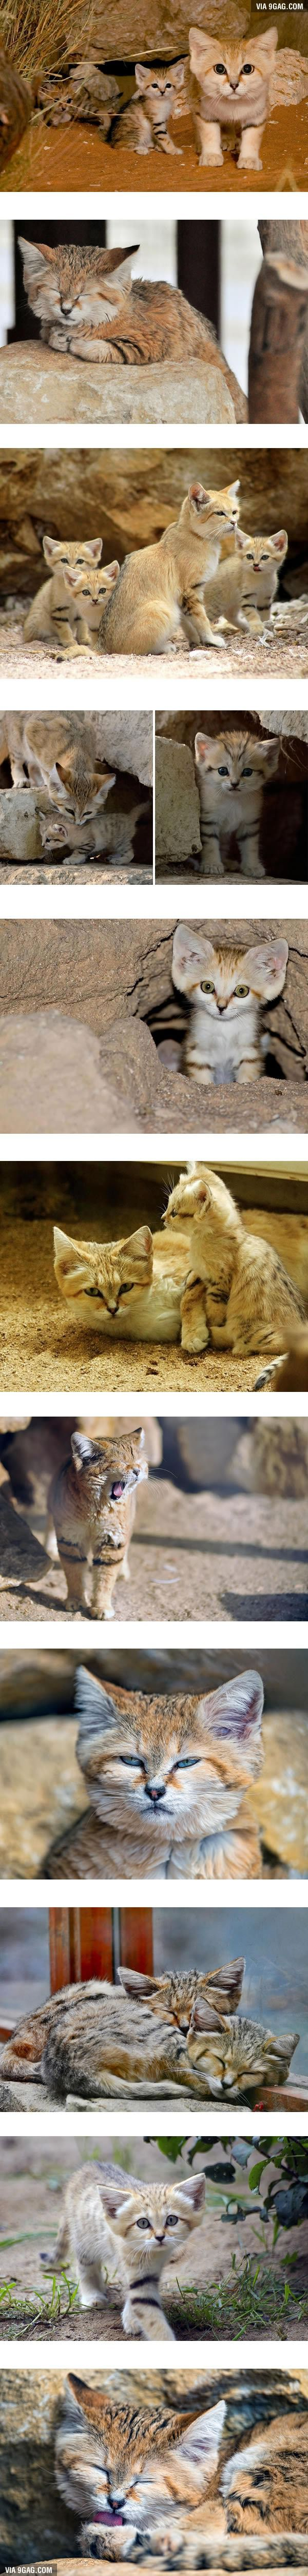 Sand Cats are adorable, but not worth the poaching.